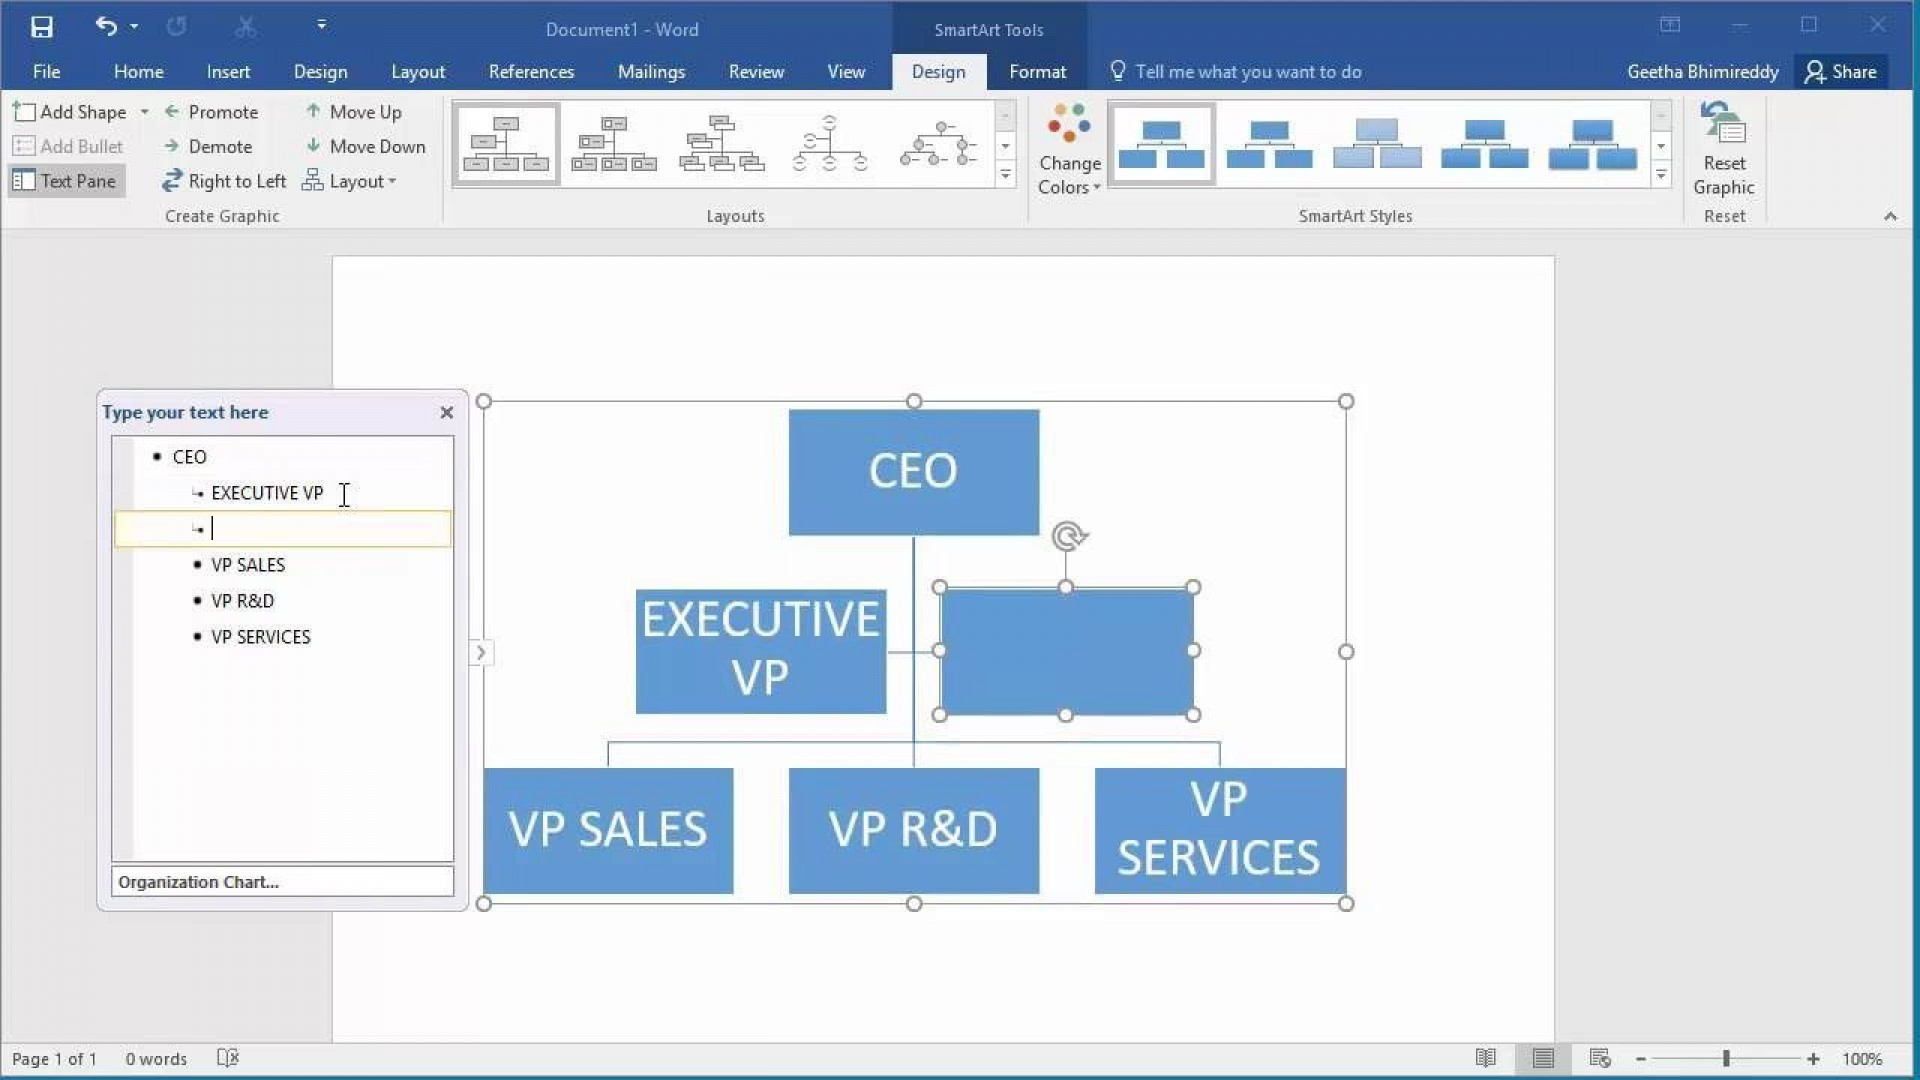 001 Awesome Organization Chart Template Word 2013 Highest Clarity  Microsoft Organizational Free1920